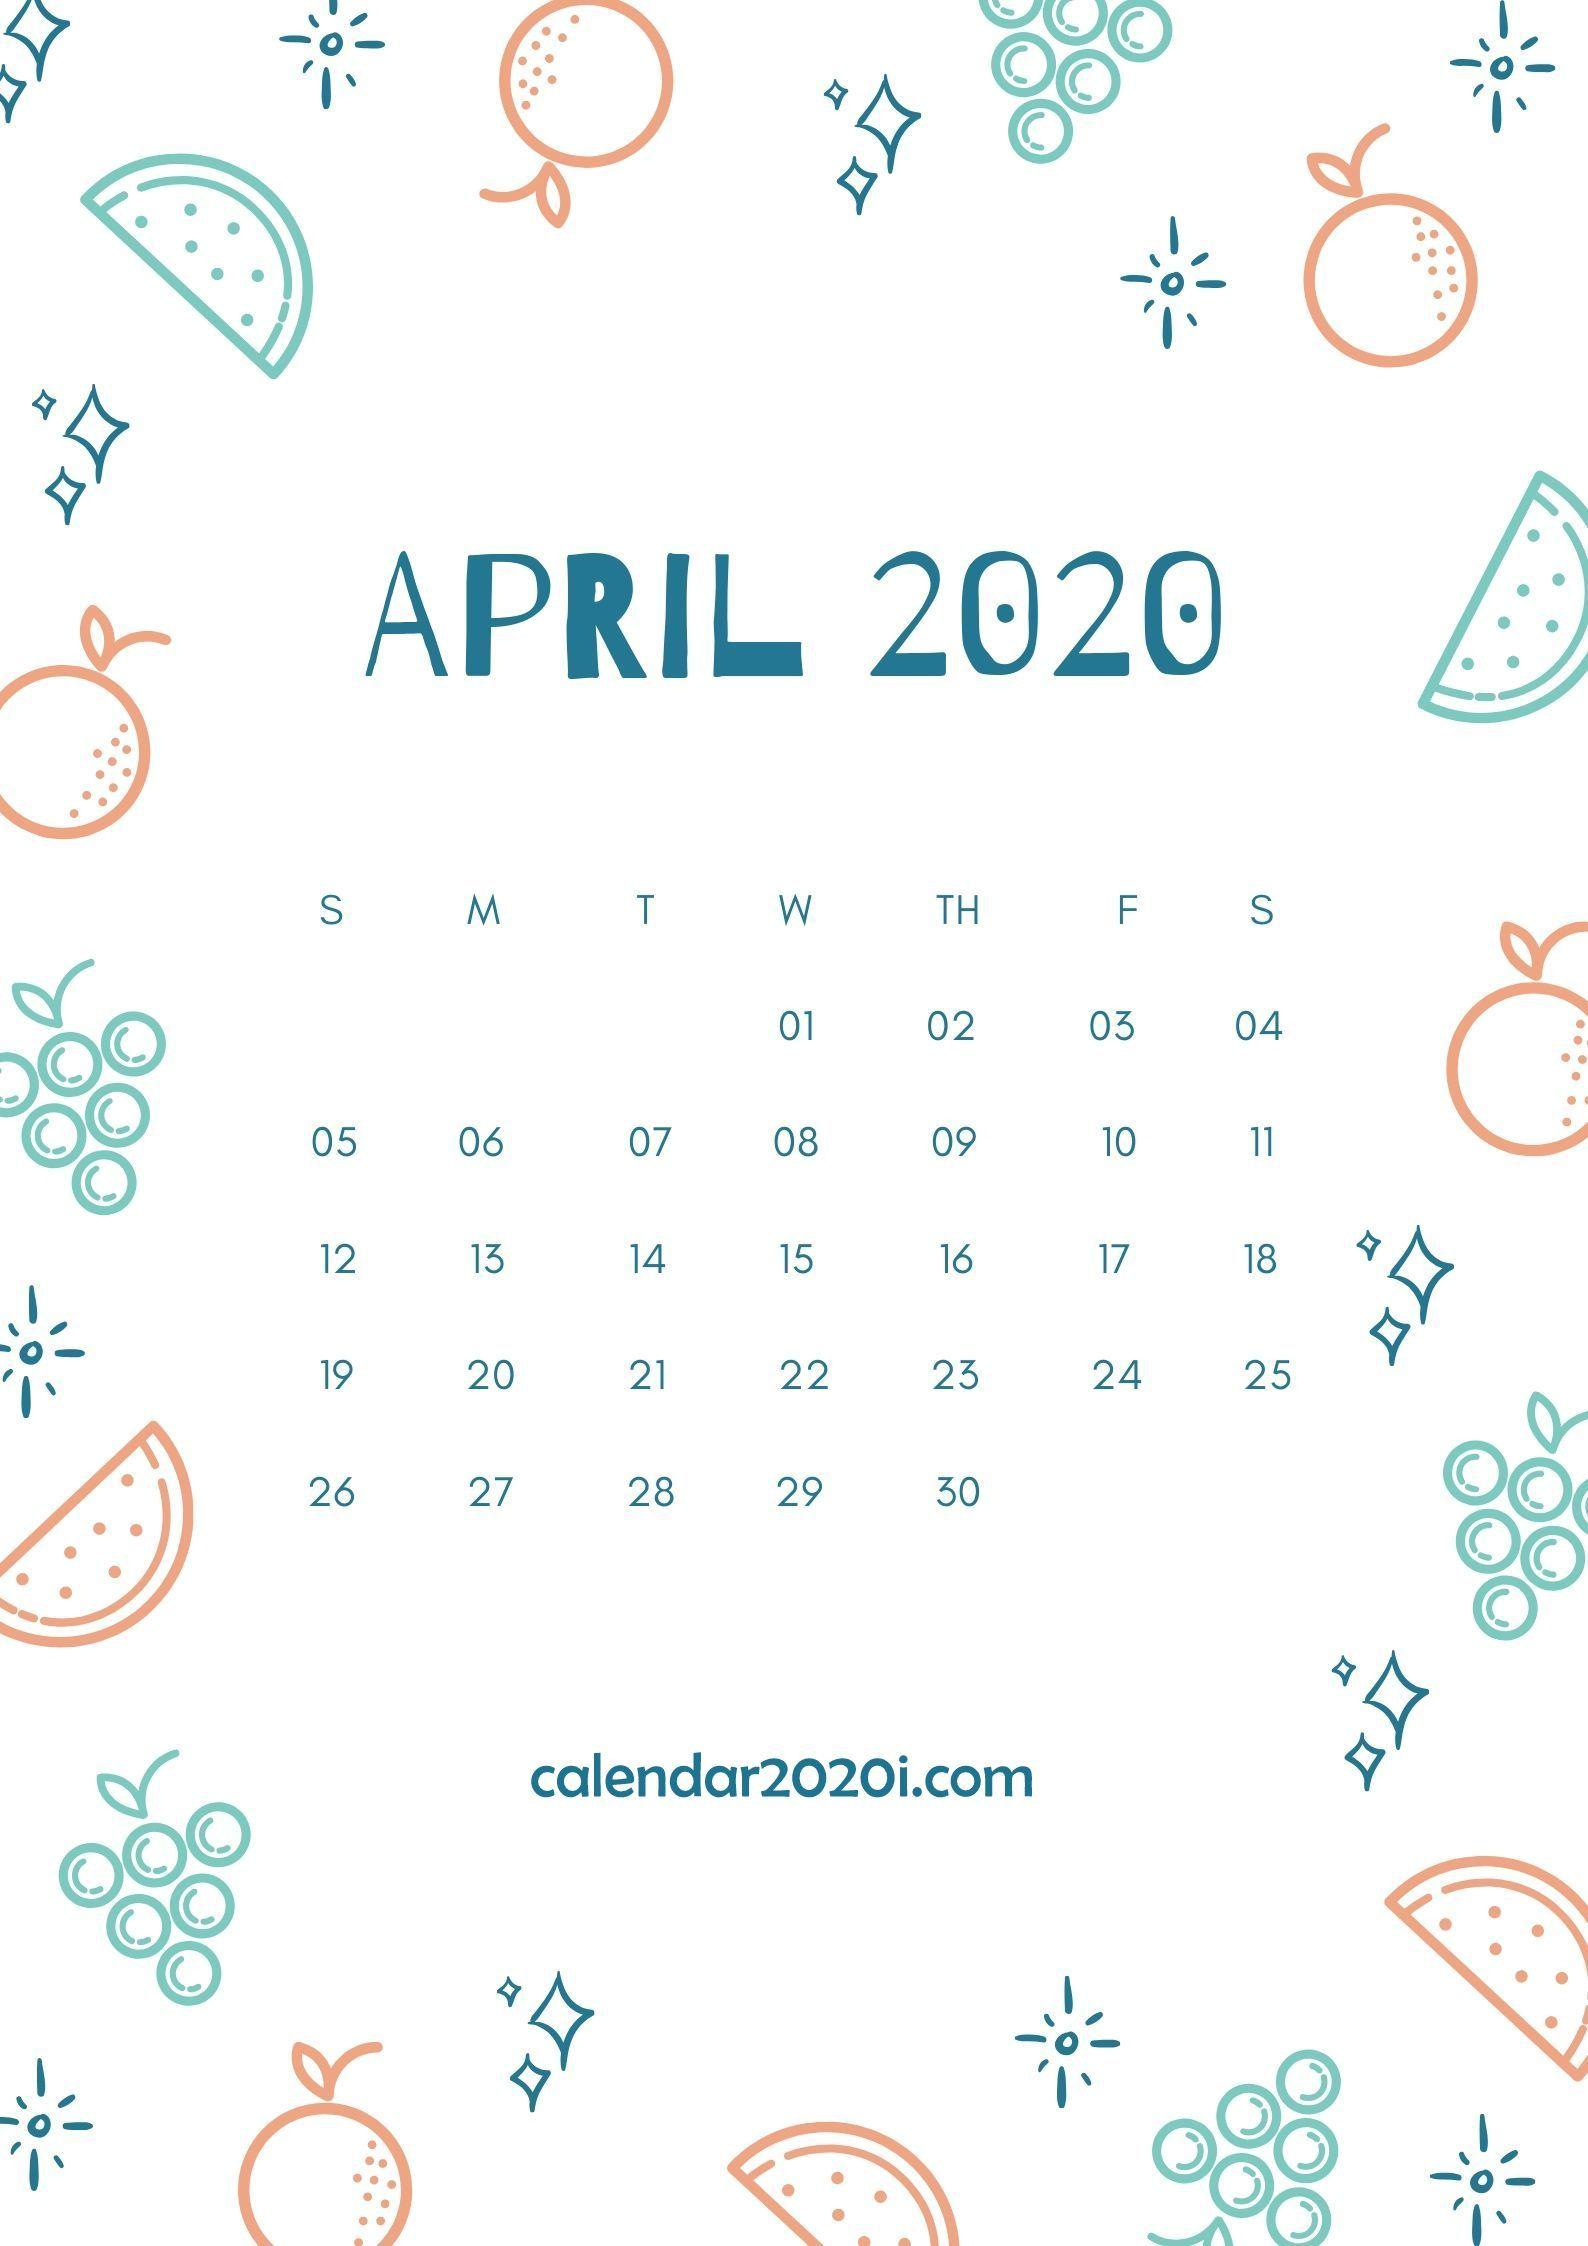 April 2020 Calendar Wallpapers Wallpaper Cave